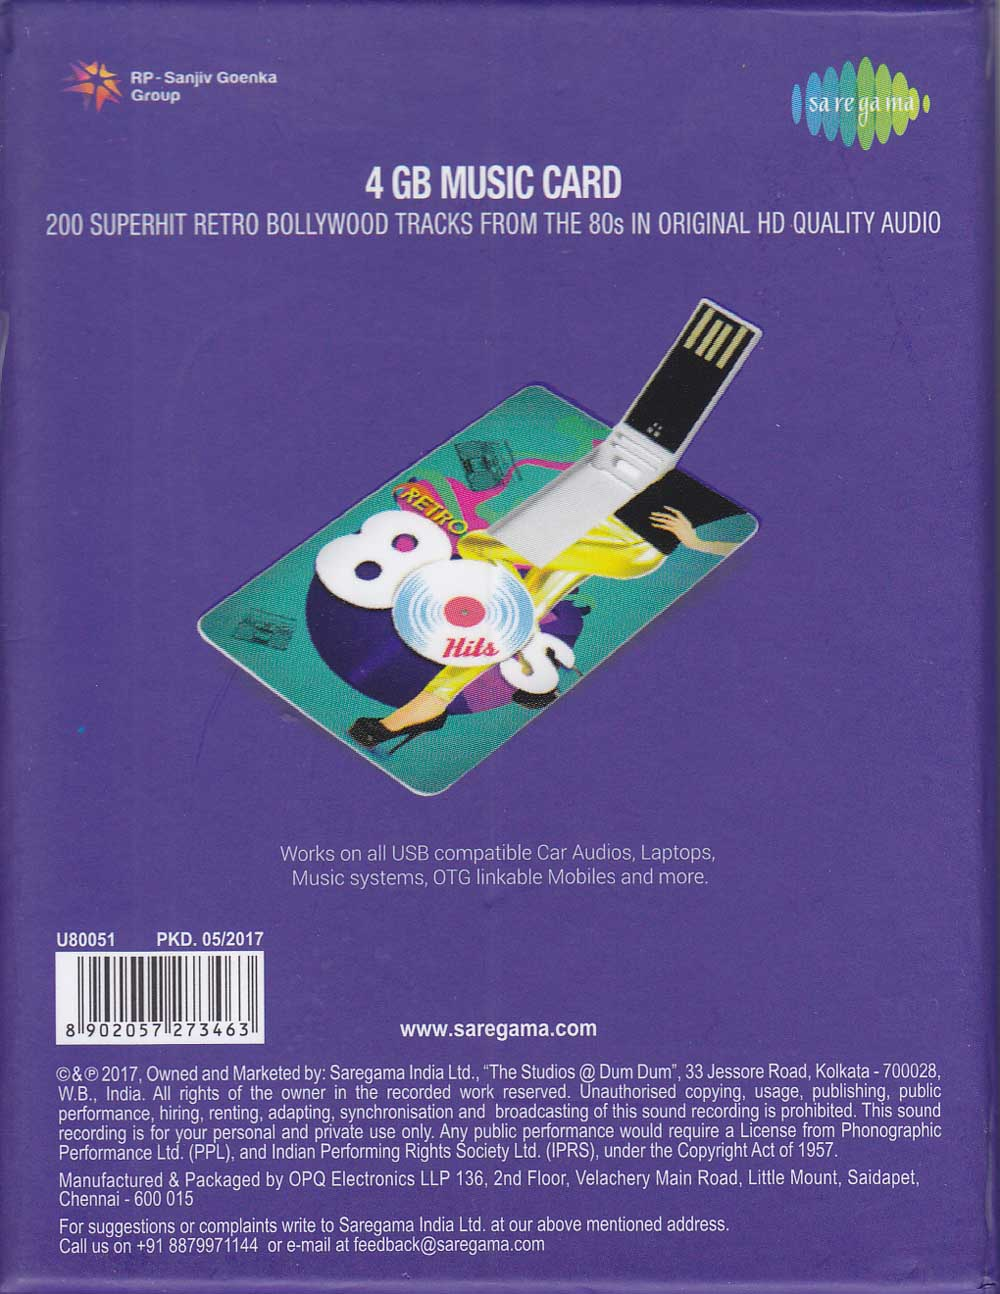 Description - Retro 80s Hindi Songs Music Card